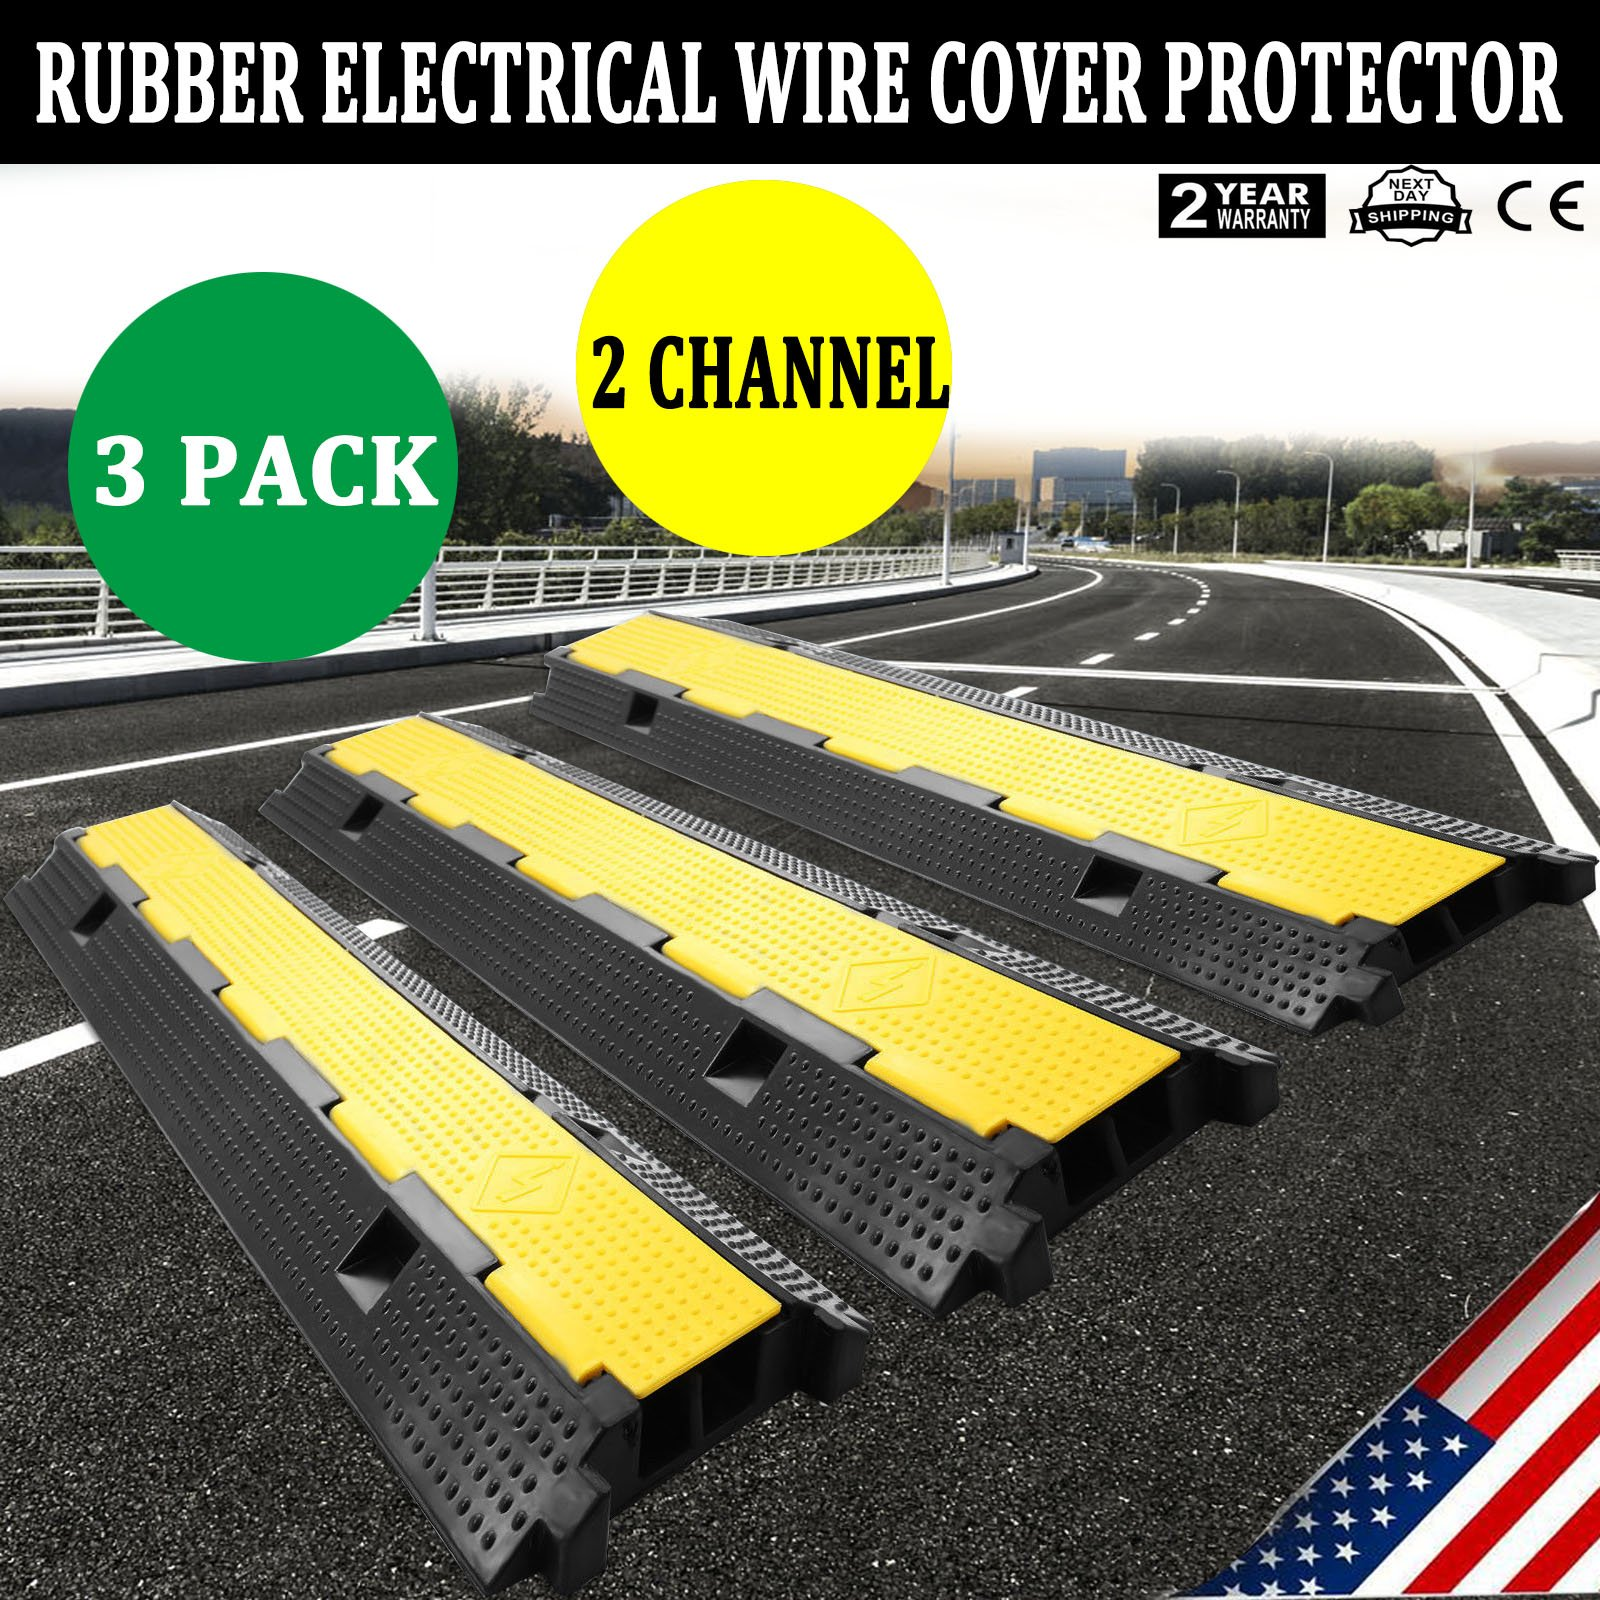 Zbond 3 Pack Extreme Rubber Cable Protectors Dual Channel Cable Protector 12000LB Rubber Speed Bump cable ramps / protectors (3 Pack) by Zbond